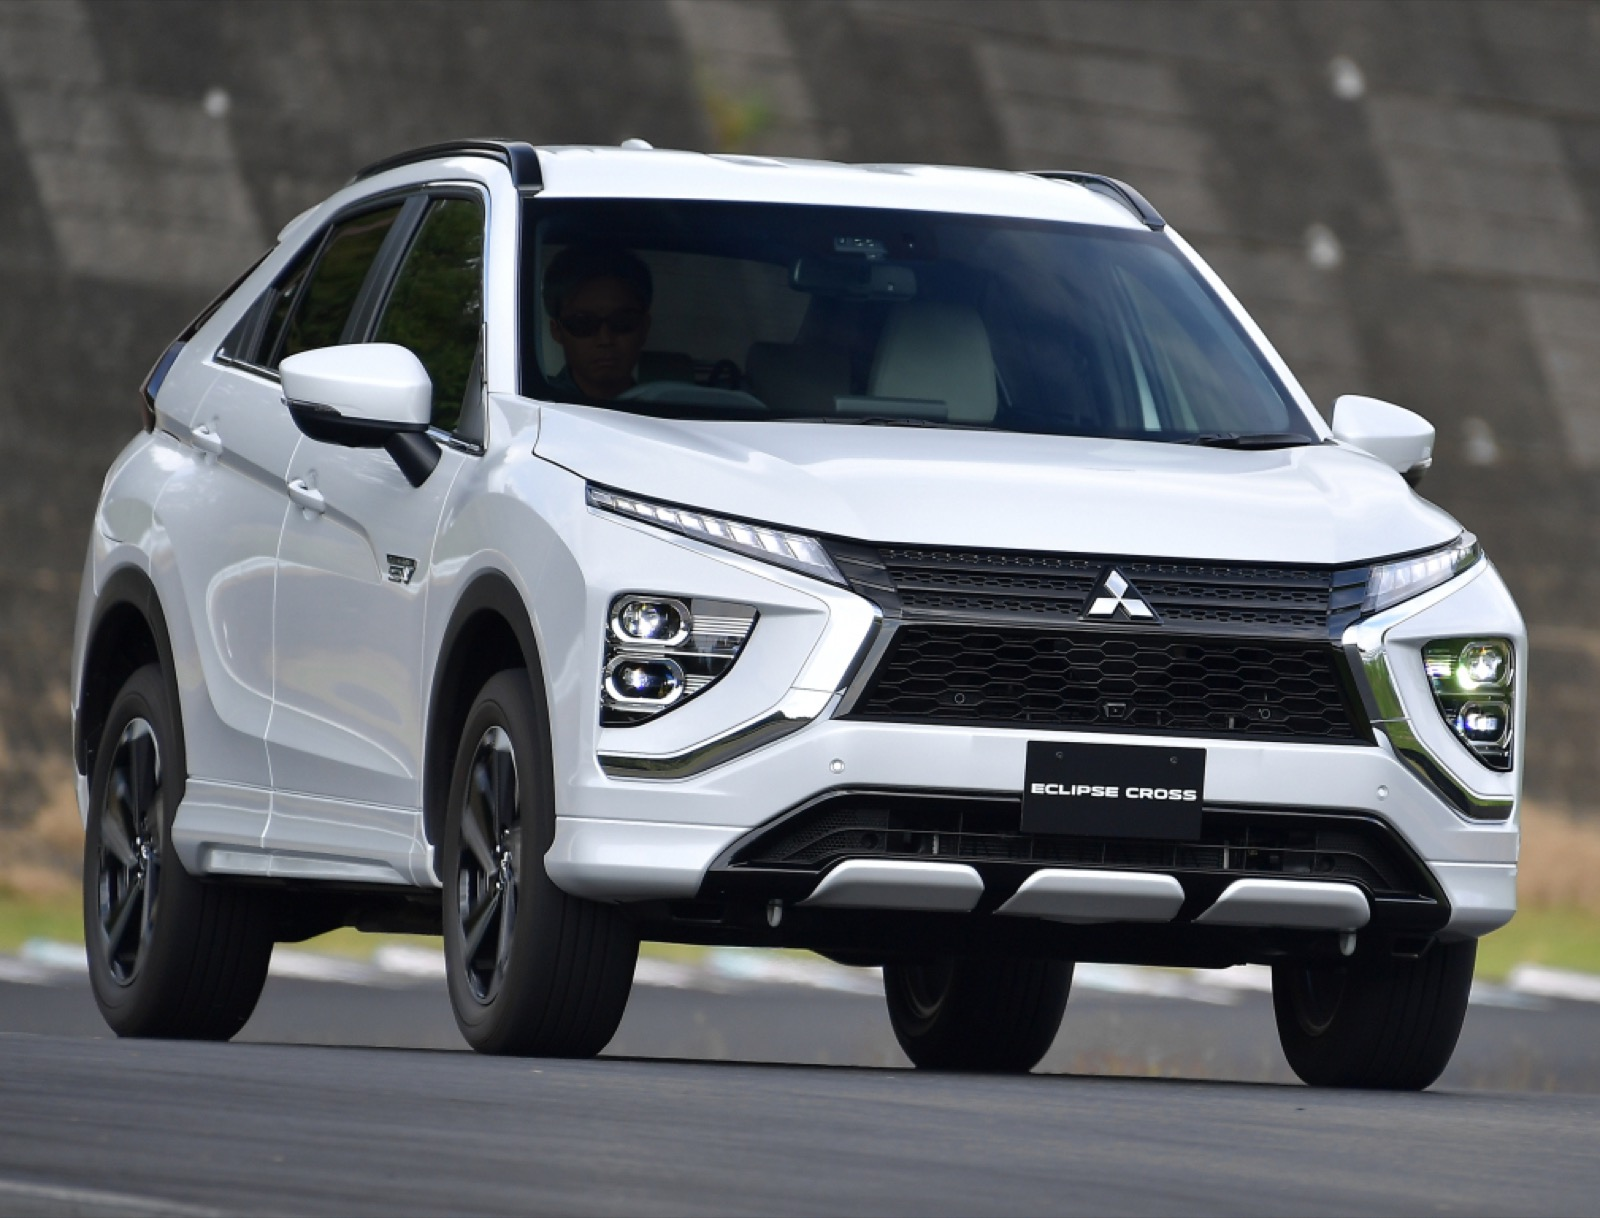 msubishi-eclipse-cross-phev-2020-4